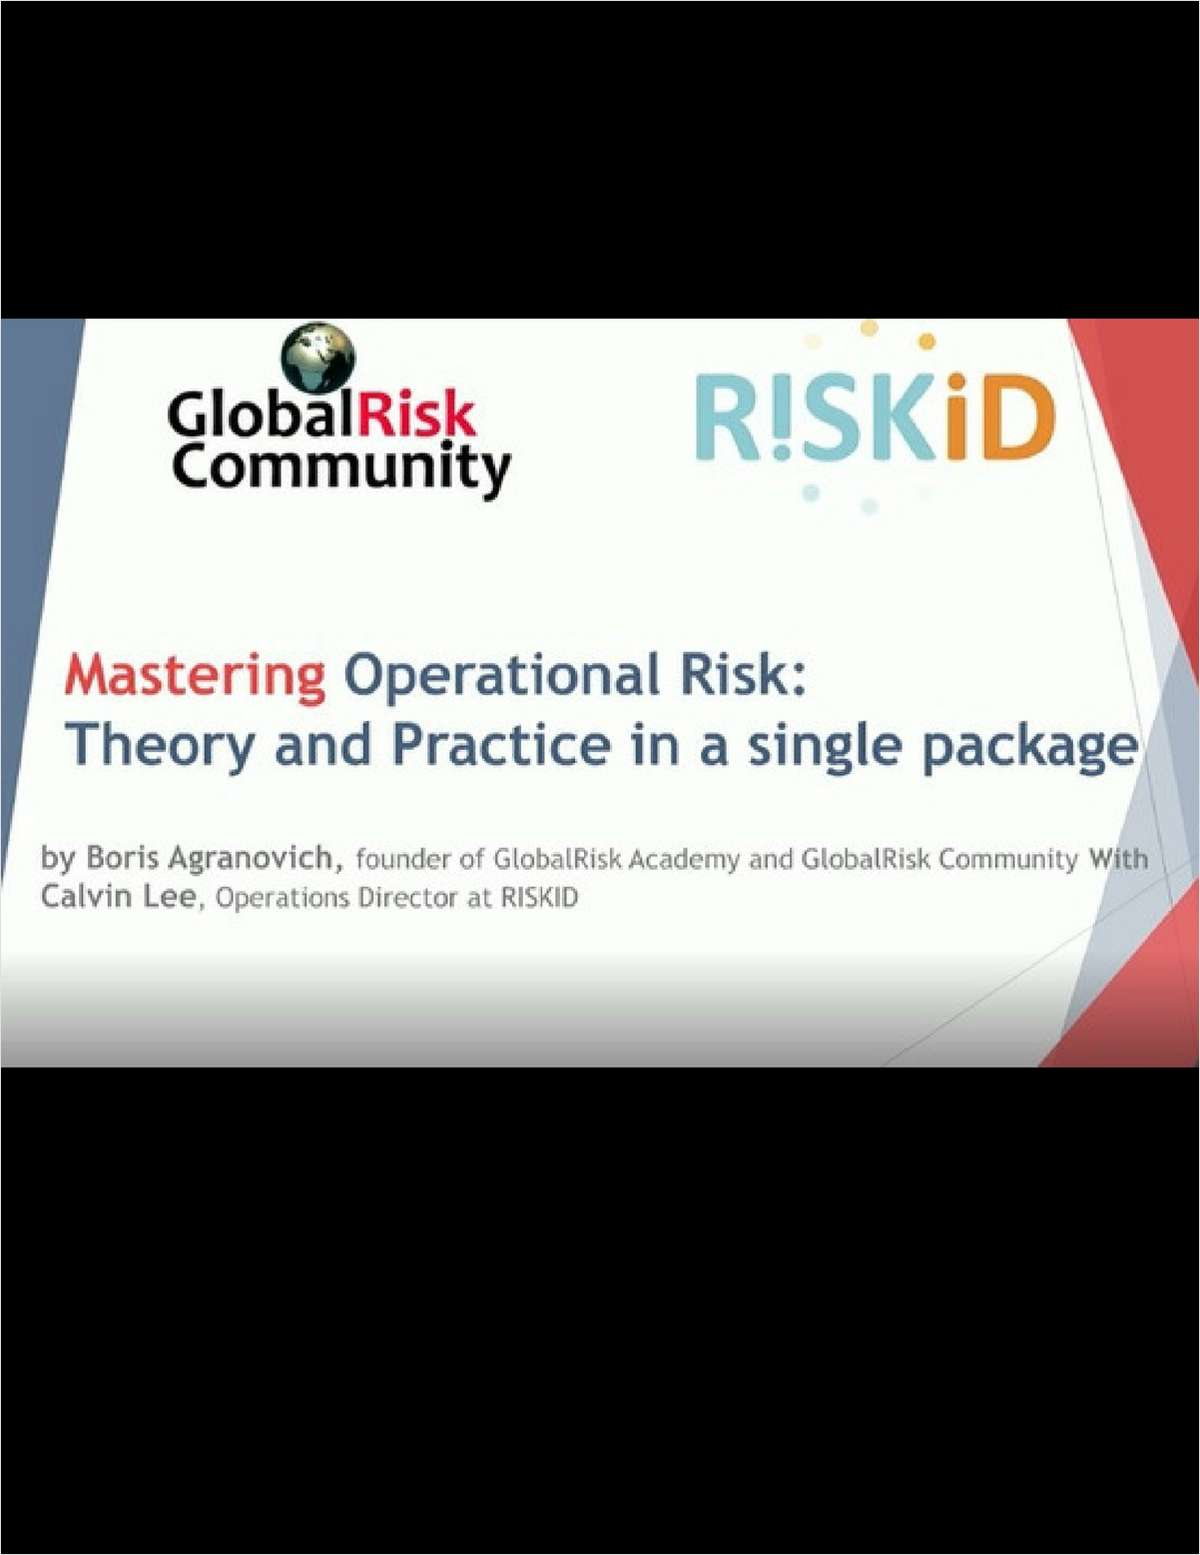 Workshop: Mastering Operational Risk - Theory and Practice in a Single Package